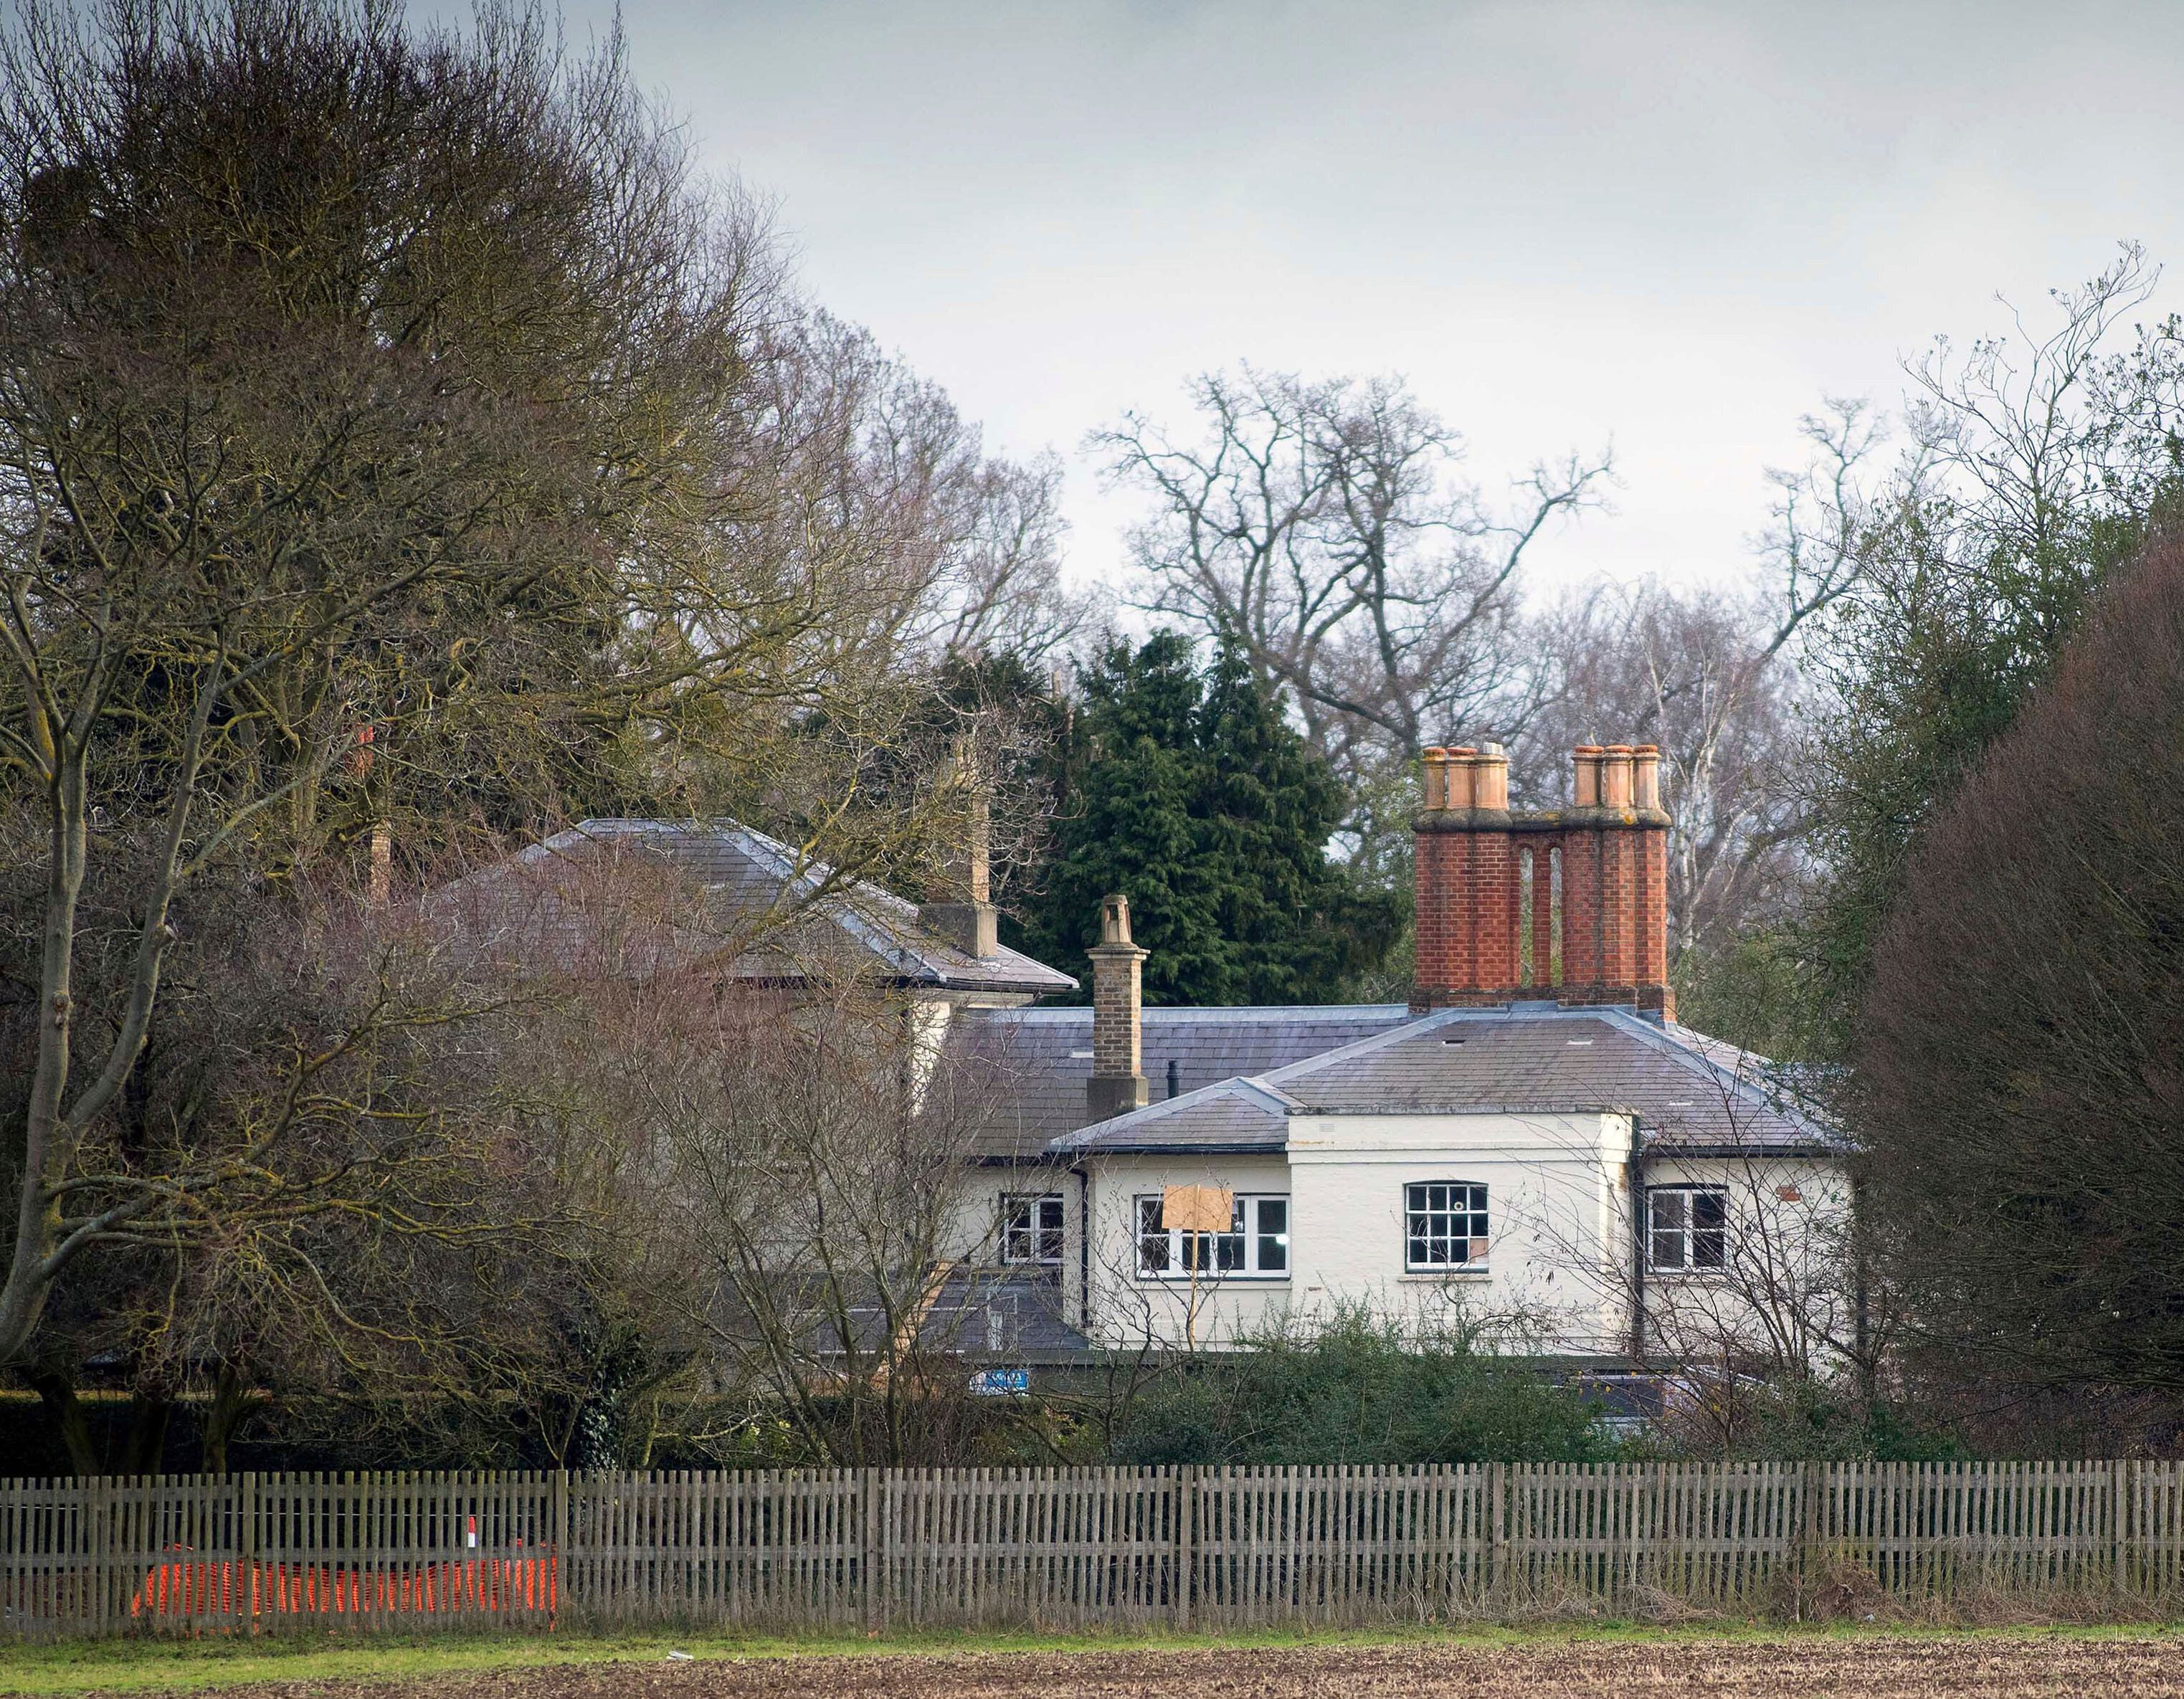 A shot of the recently renovated Frogmore Cottage.